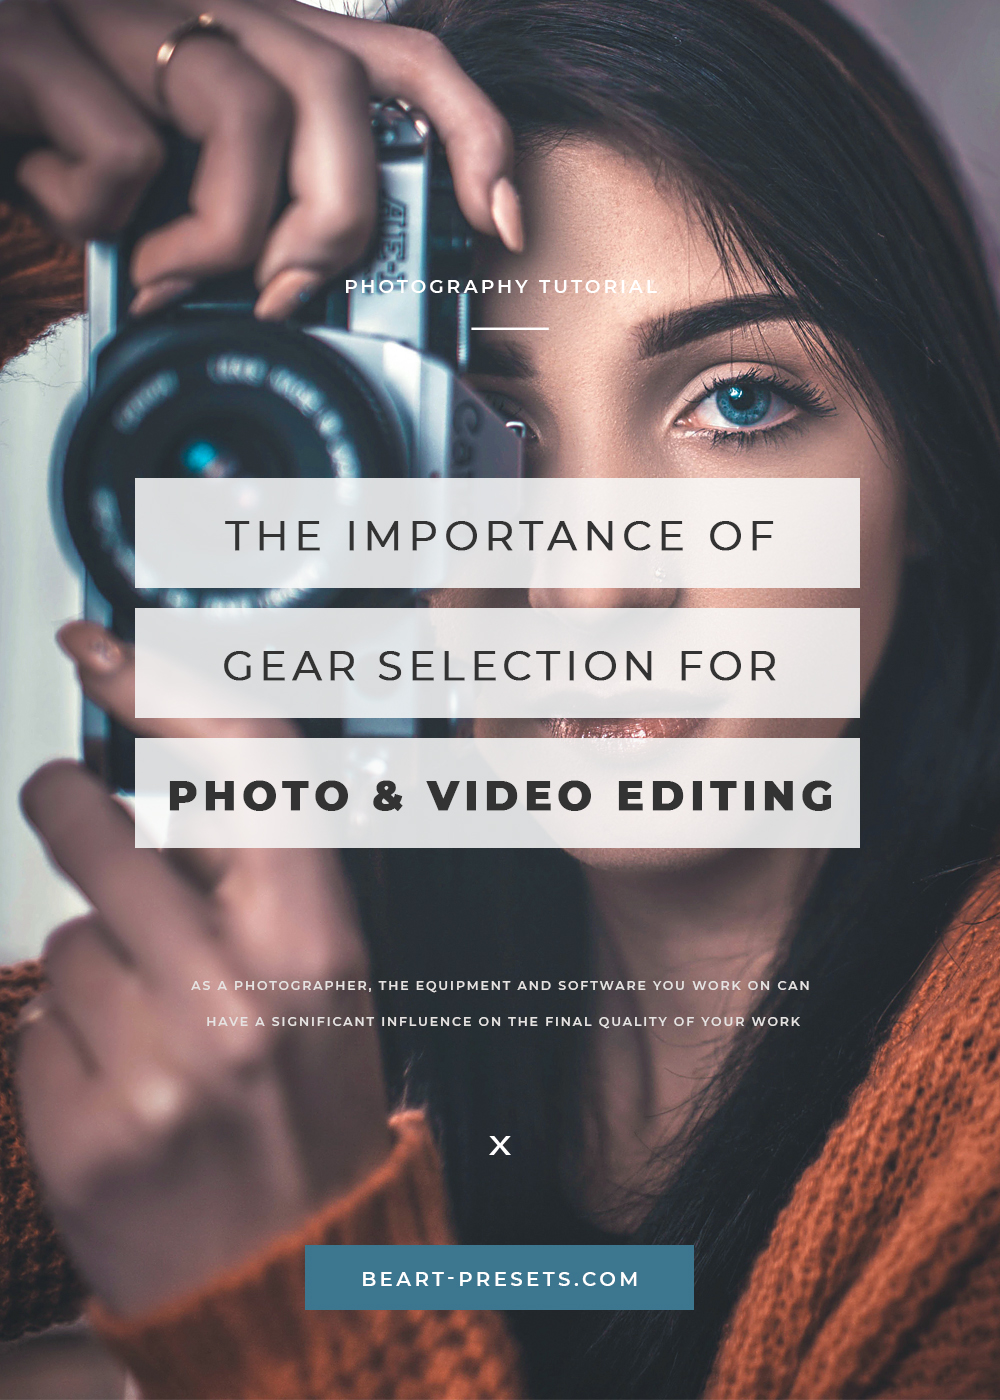 THE IMPORTANCE OF GEAR SELECTION FOR PHOTO & VIDEO EDITING